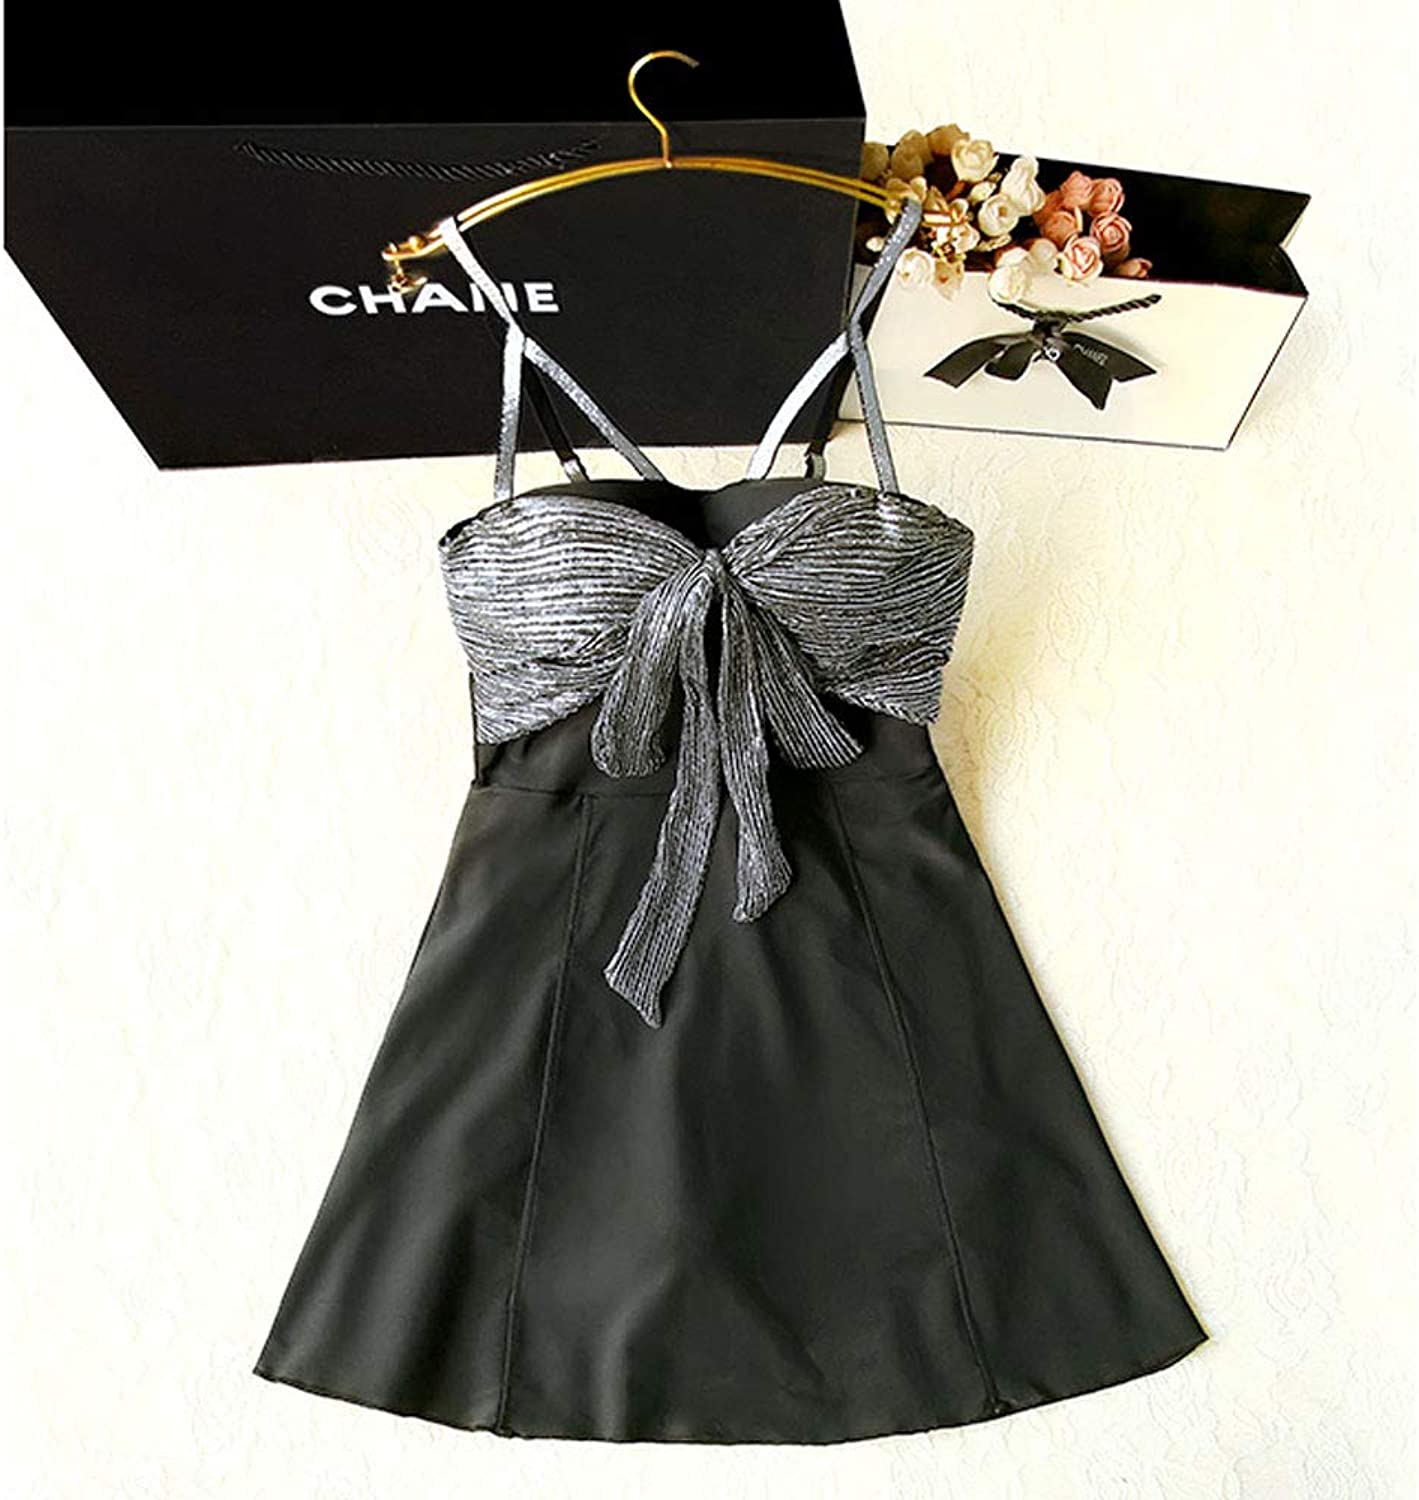 Bathing Suits for Women, High Waisted Swimsuit Cute Sexy Swimwear High Waisted Bikini Black Sexy Sling Bow Halter Dress Swimsuit for Lady